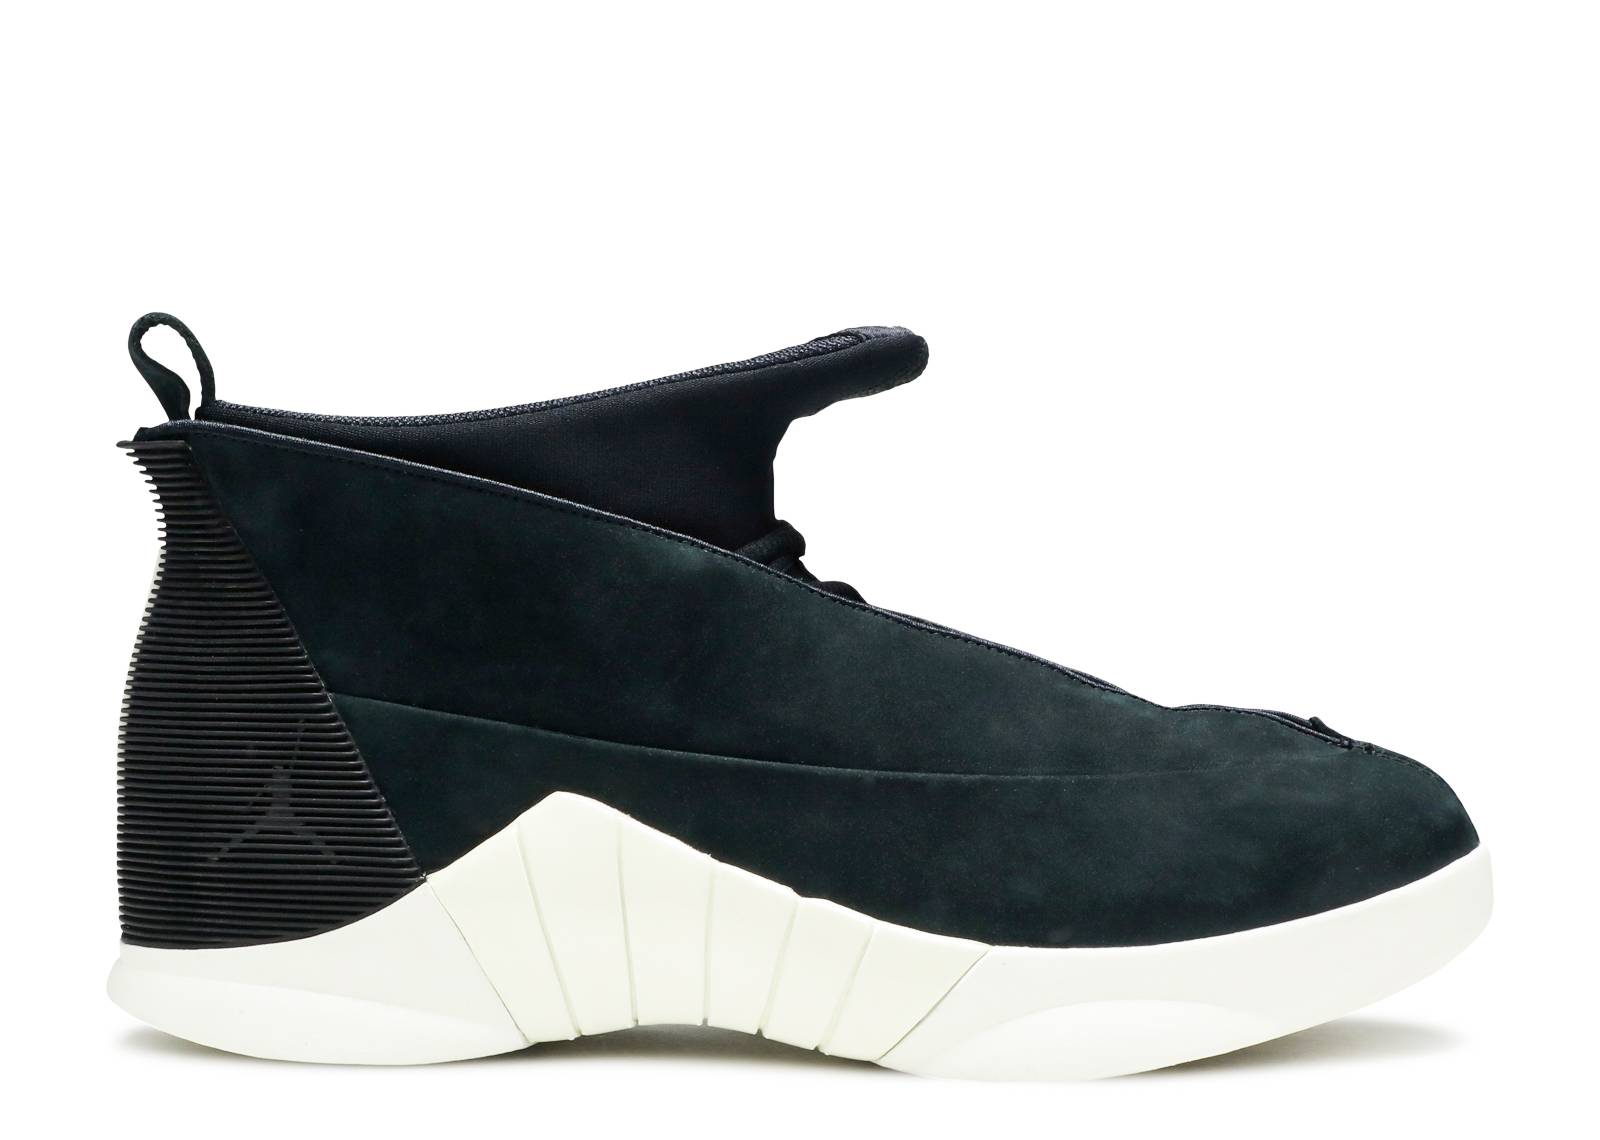 98a8cd2baeec4e Air Jordan 15 Retro Psny